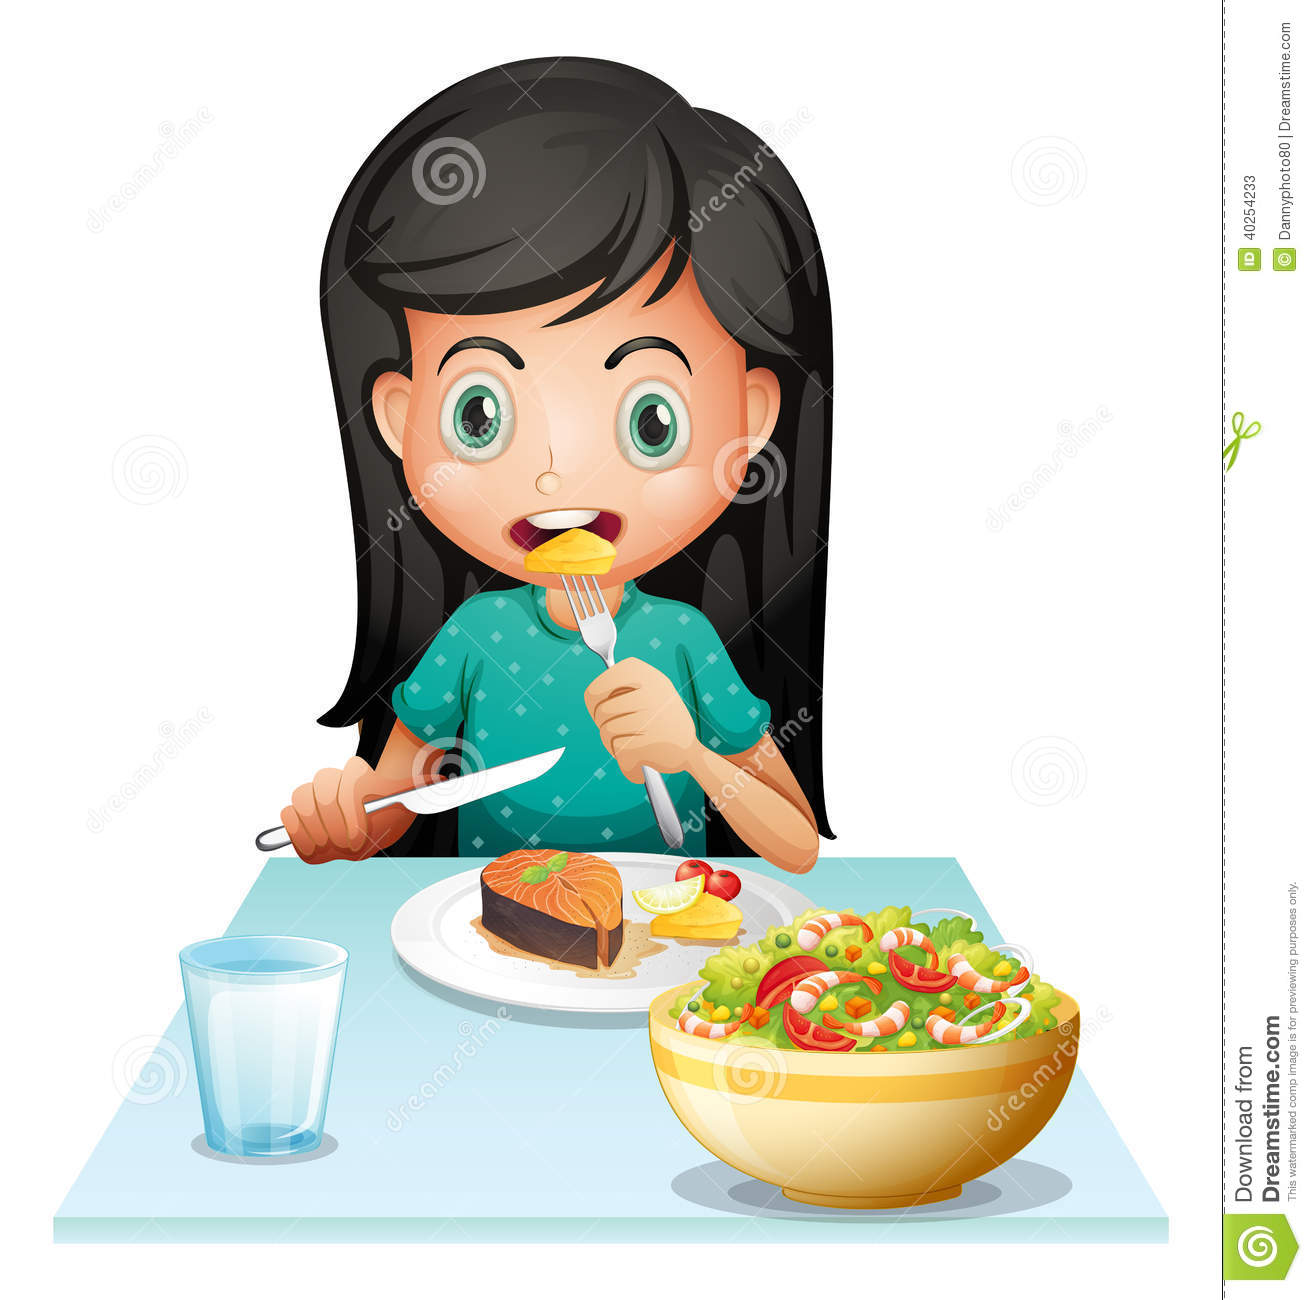 clipart girl eating breakfast - photo #36